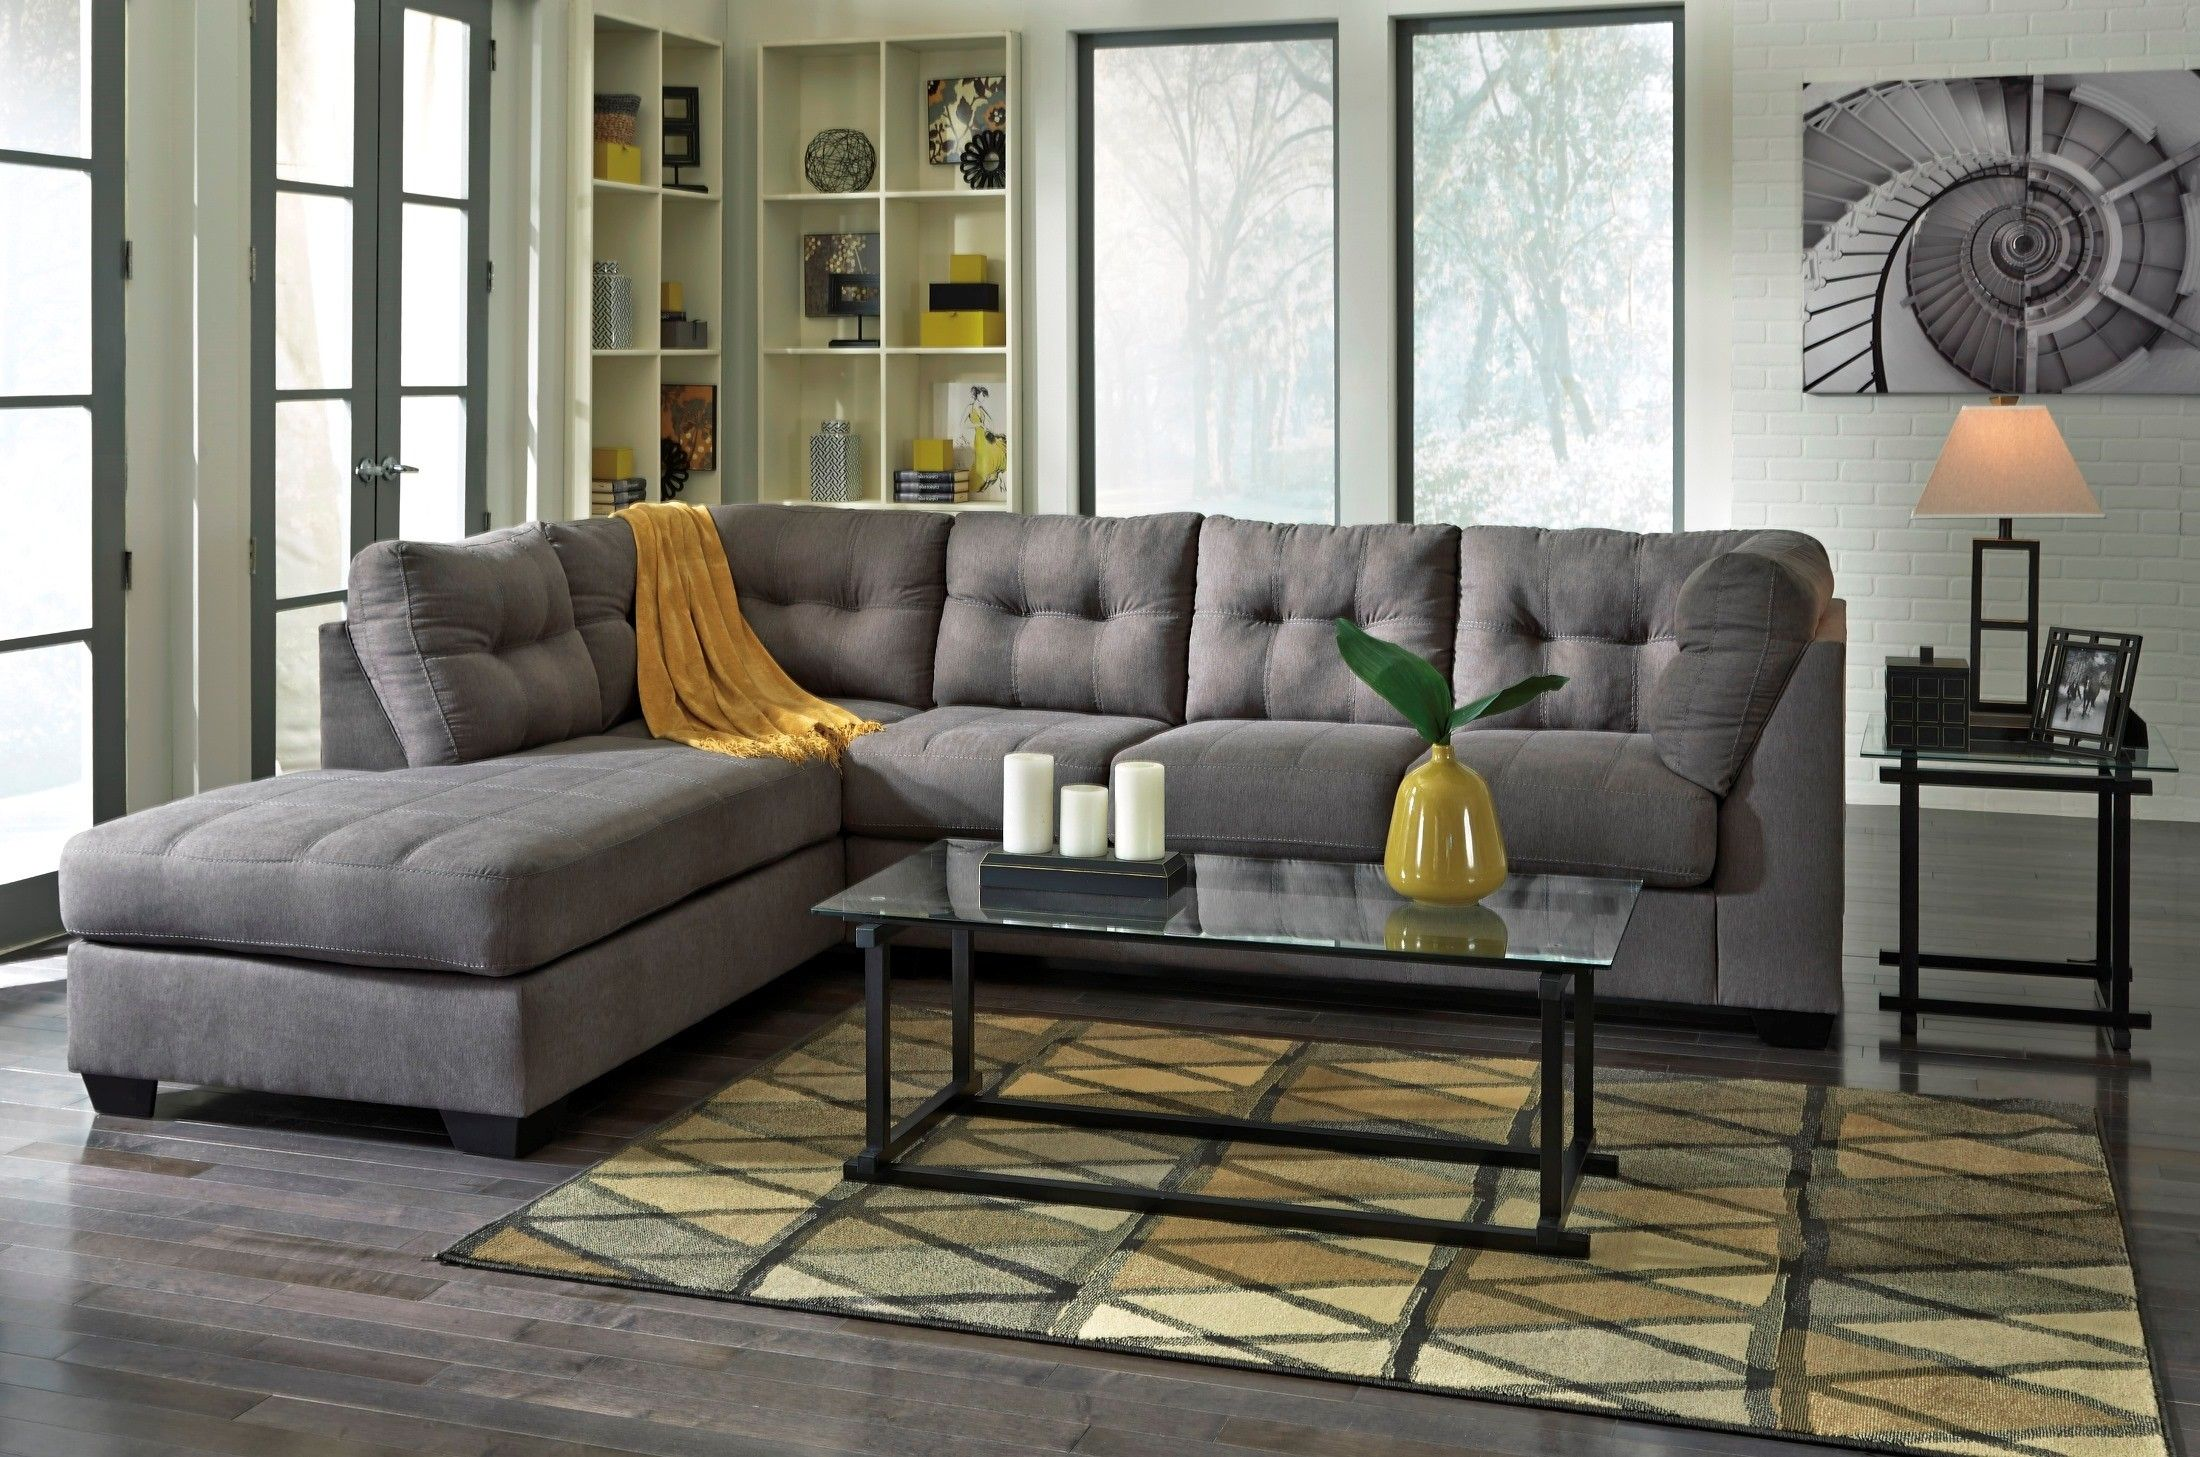 Maier Charcoal Laf Sectional 3 Furniture Ashley Furniture Sofas